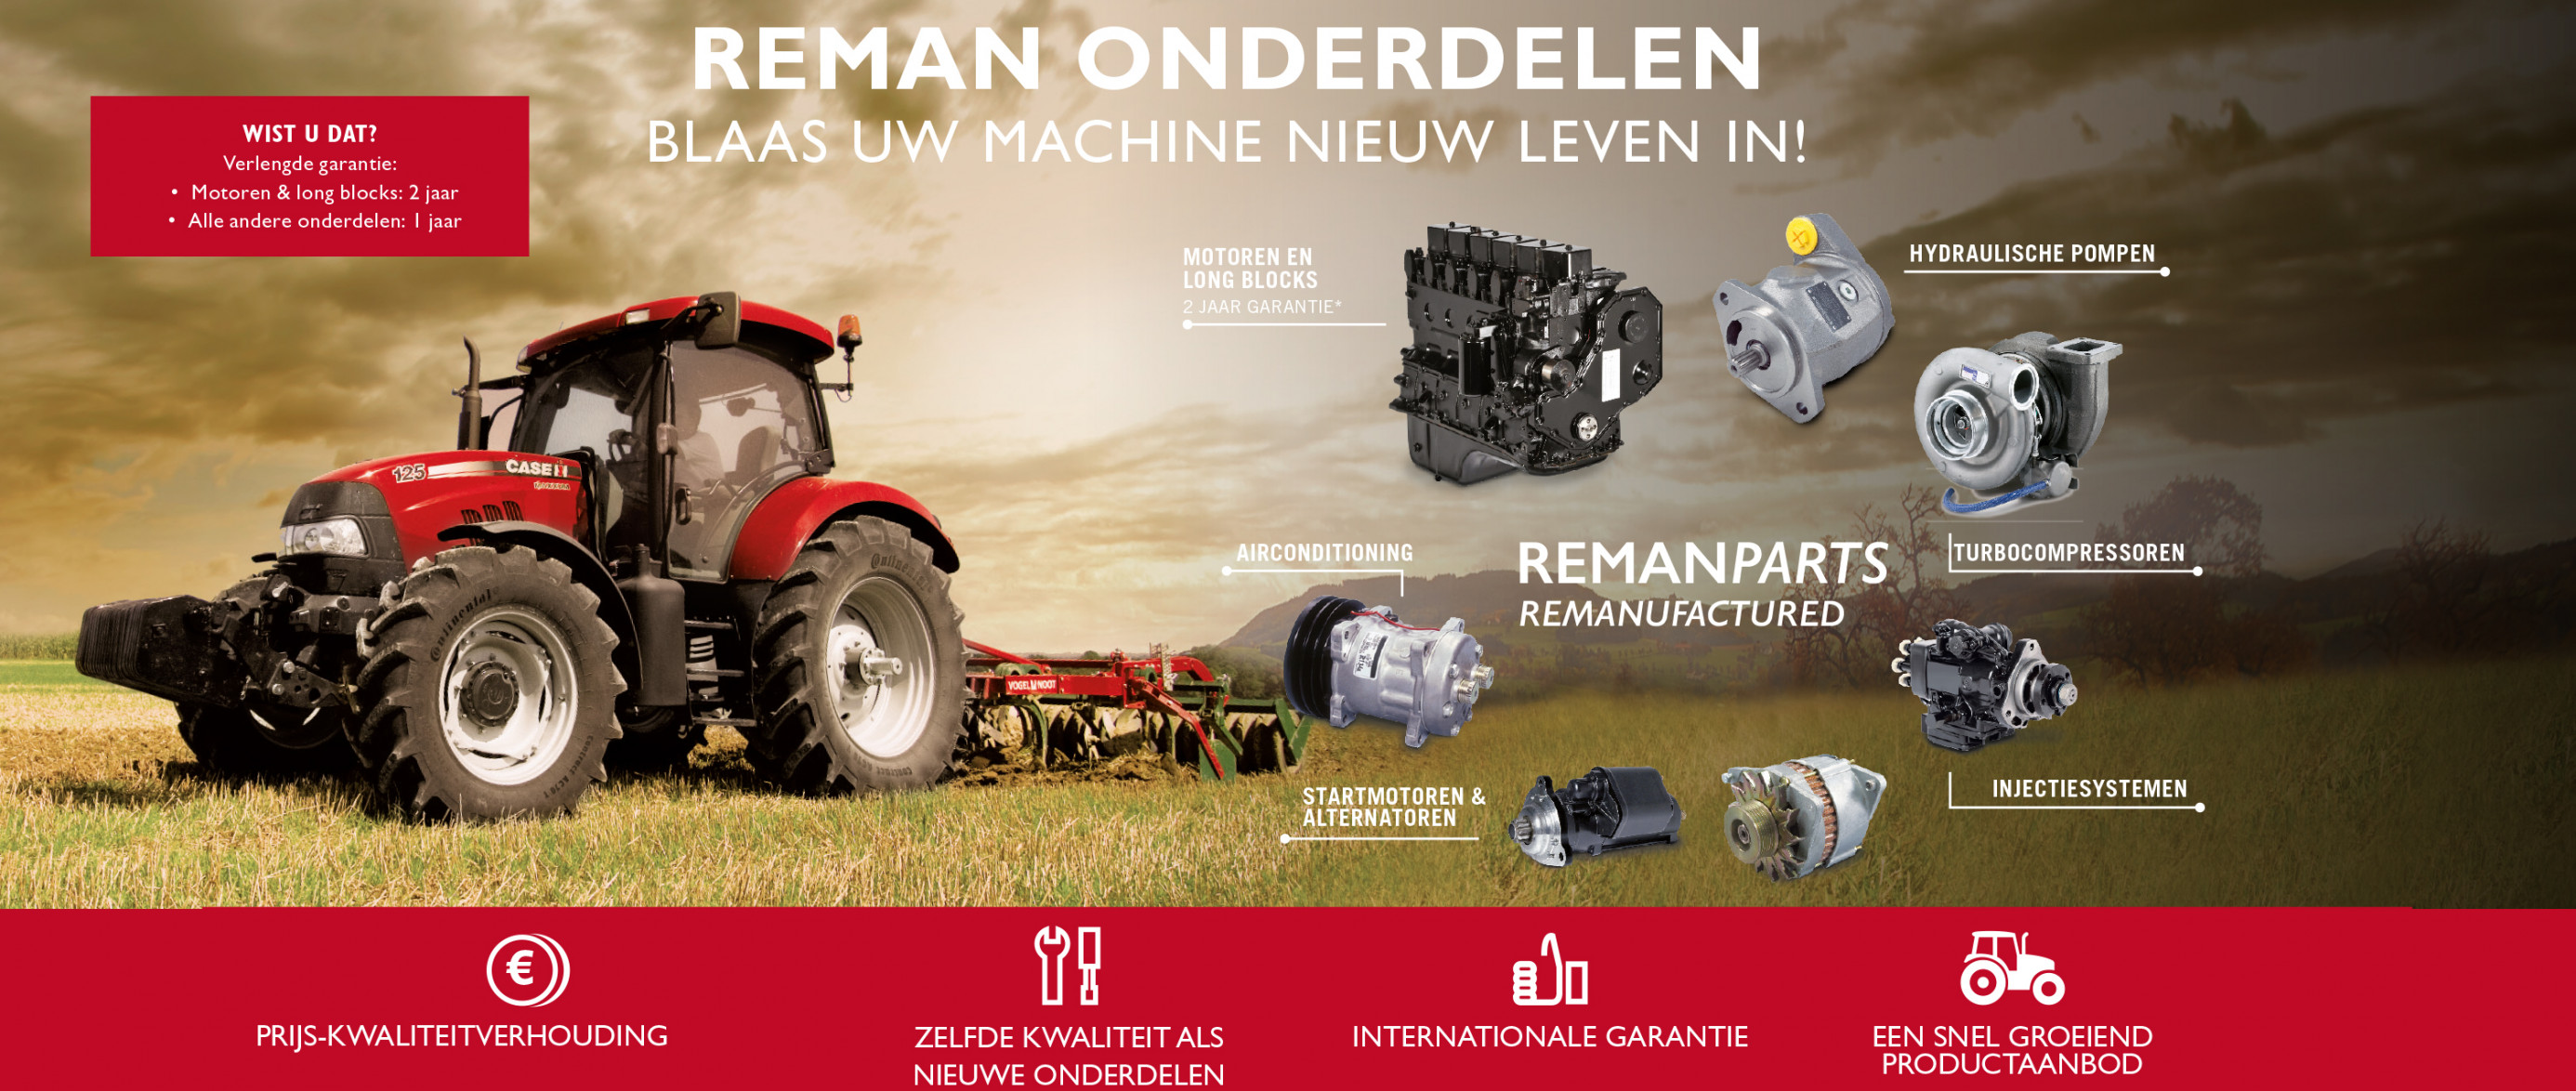 header-reman-nl.jpg